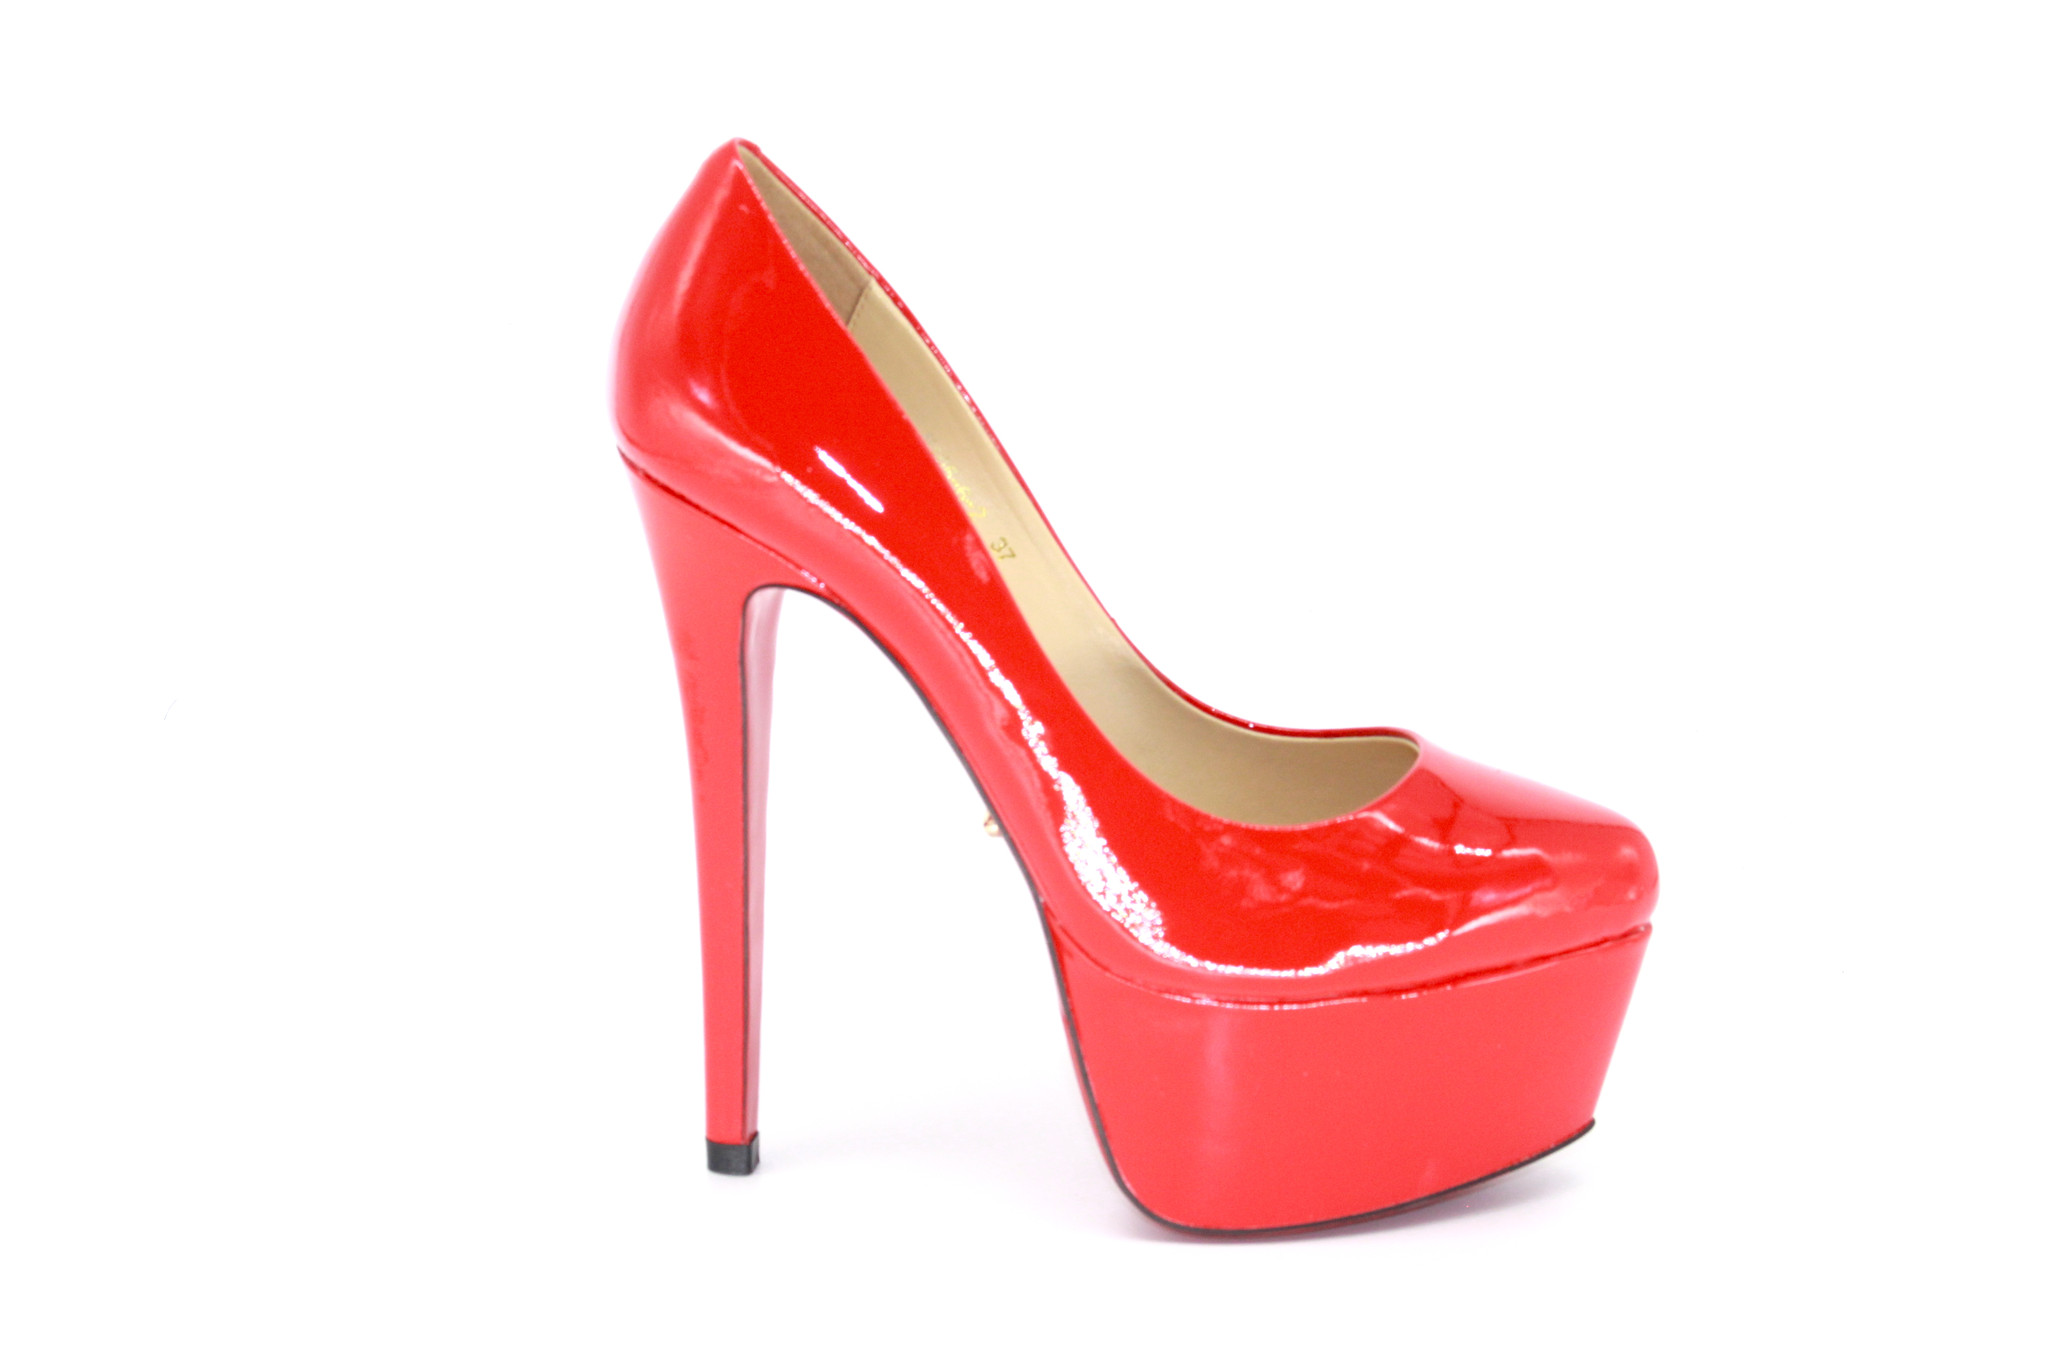 Fashion - Red Platform High Heel Pumps